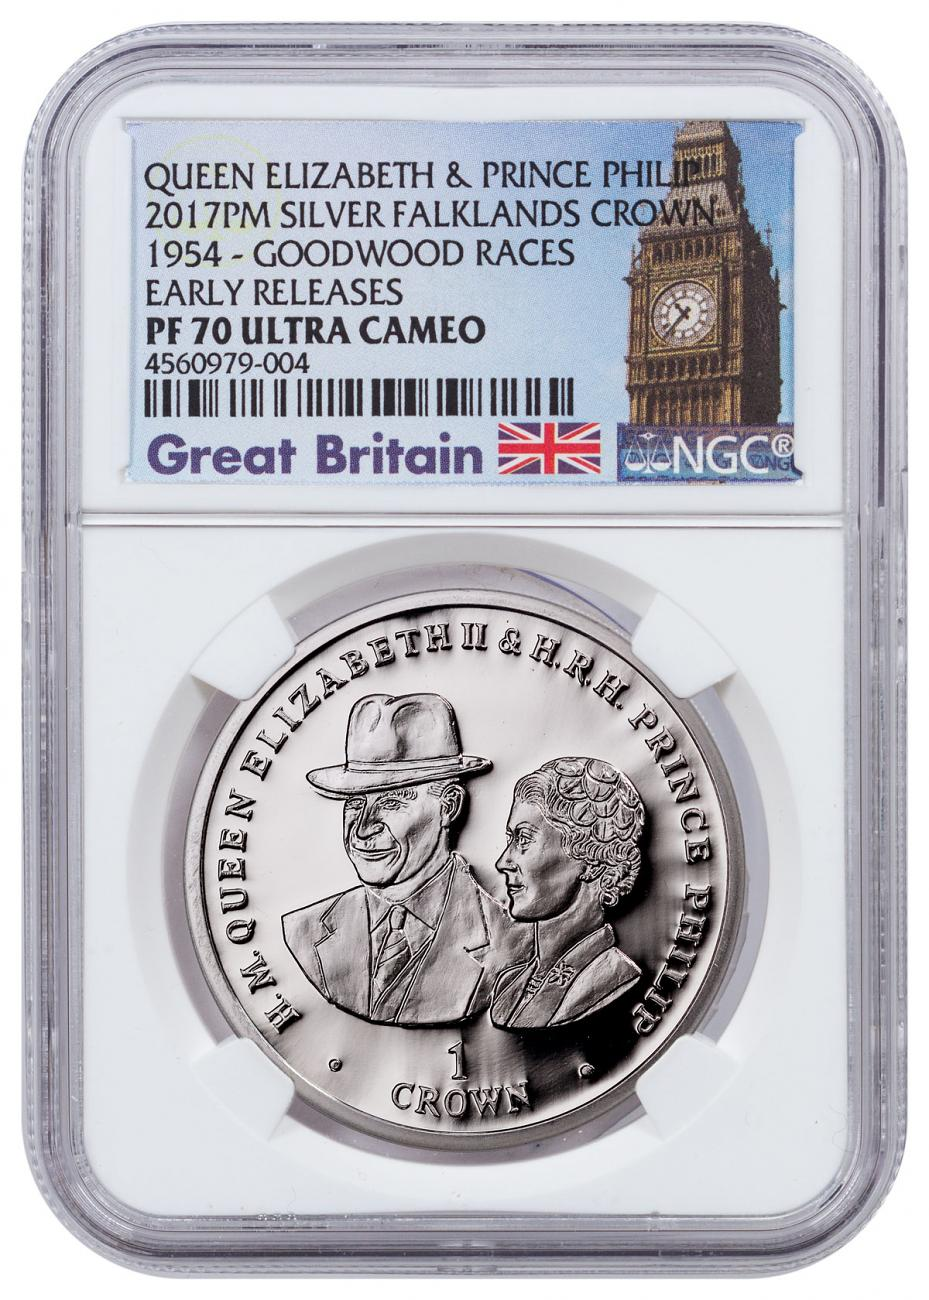 2017 Falkland Islands 70 Years of Queen Elizabeth II & Prince Phillip - The Goodwood Race Silver Proof 1 Crown NGC PF70 UC Exclusive Big Ben Label